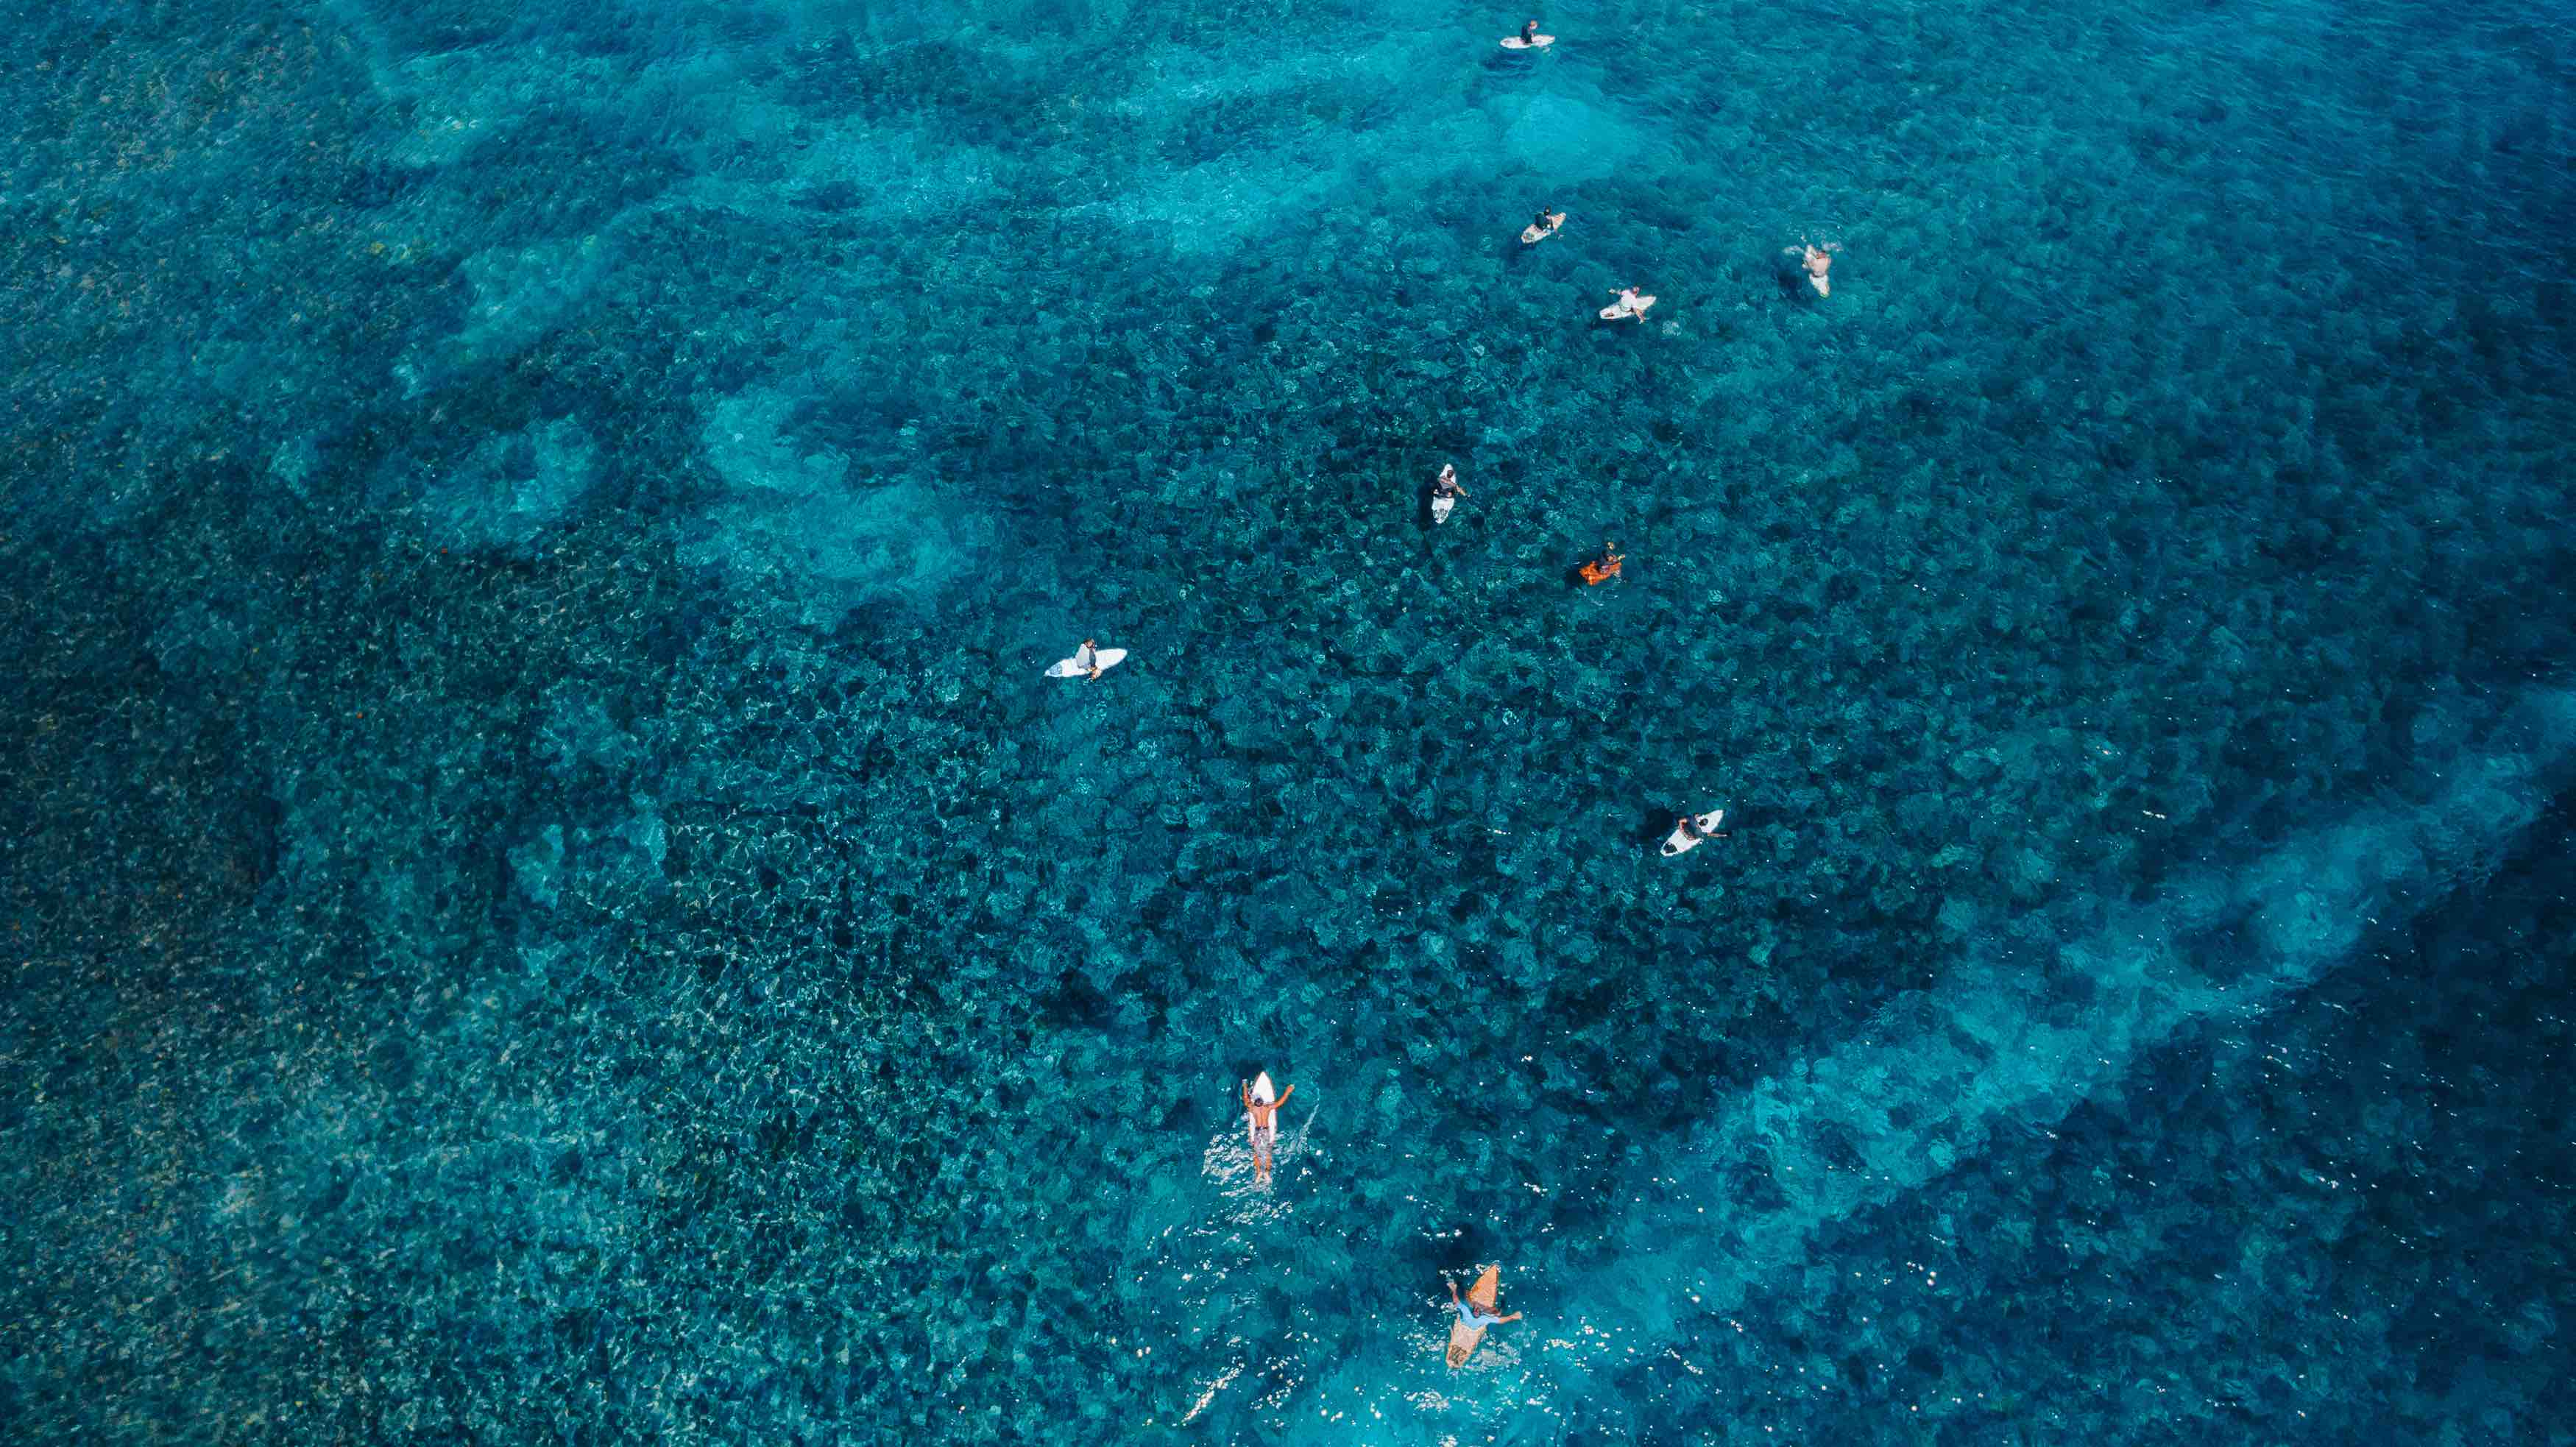 Drone Surf Lembongan Crystal Clear Water